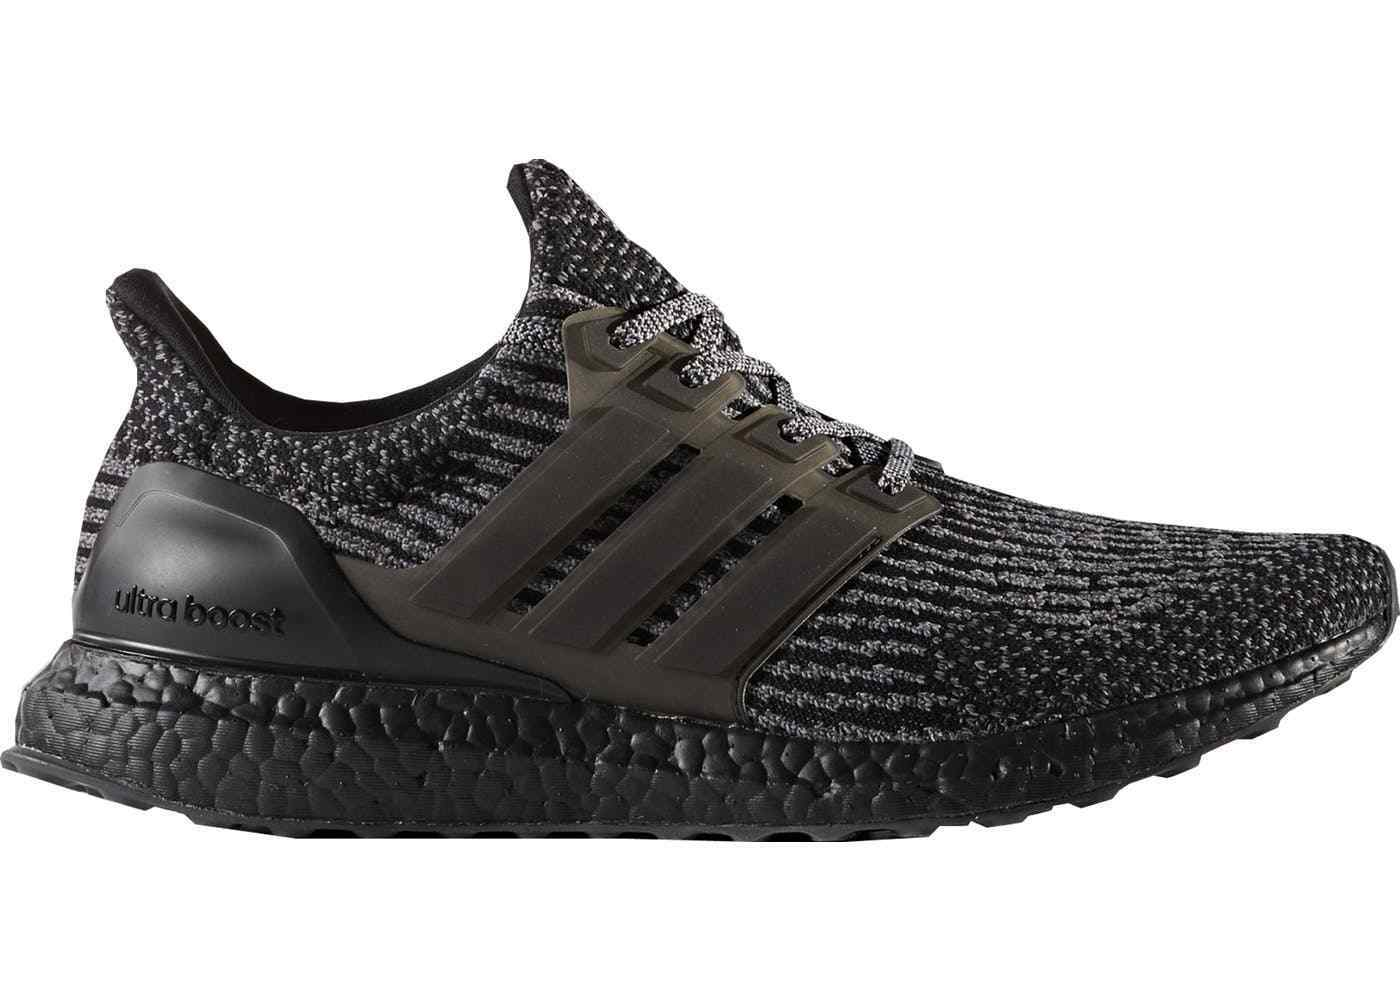 Adidas Ultra Boost 3.0 Triple Black CG3038 DS Size Men's 8.5 100% Authentic